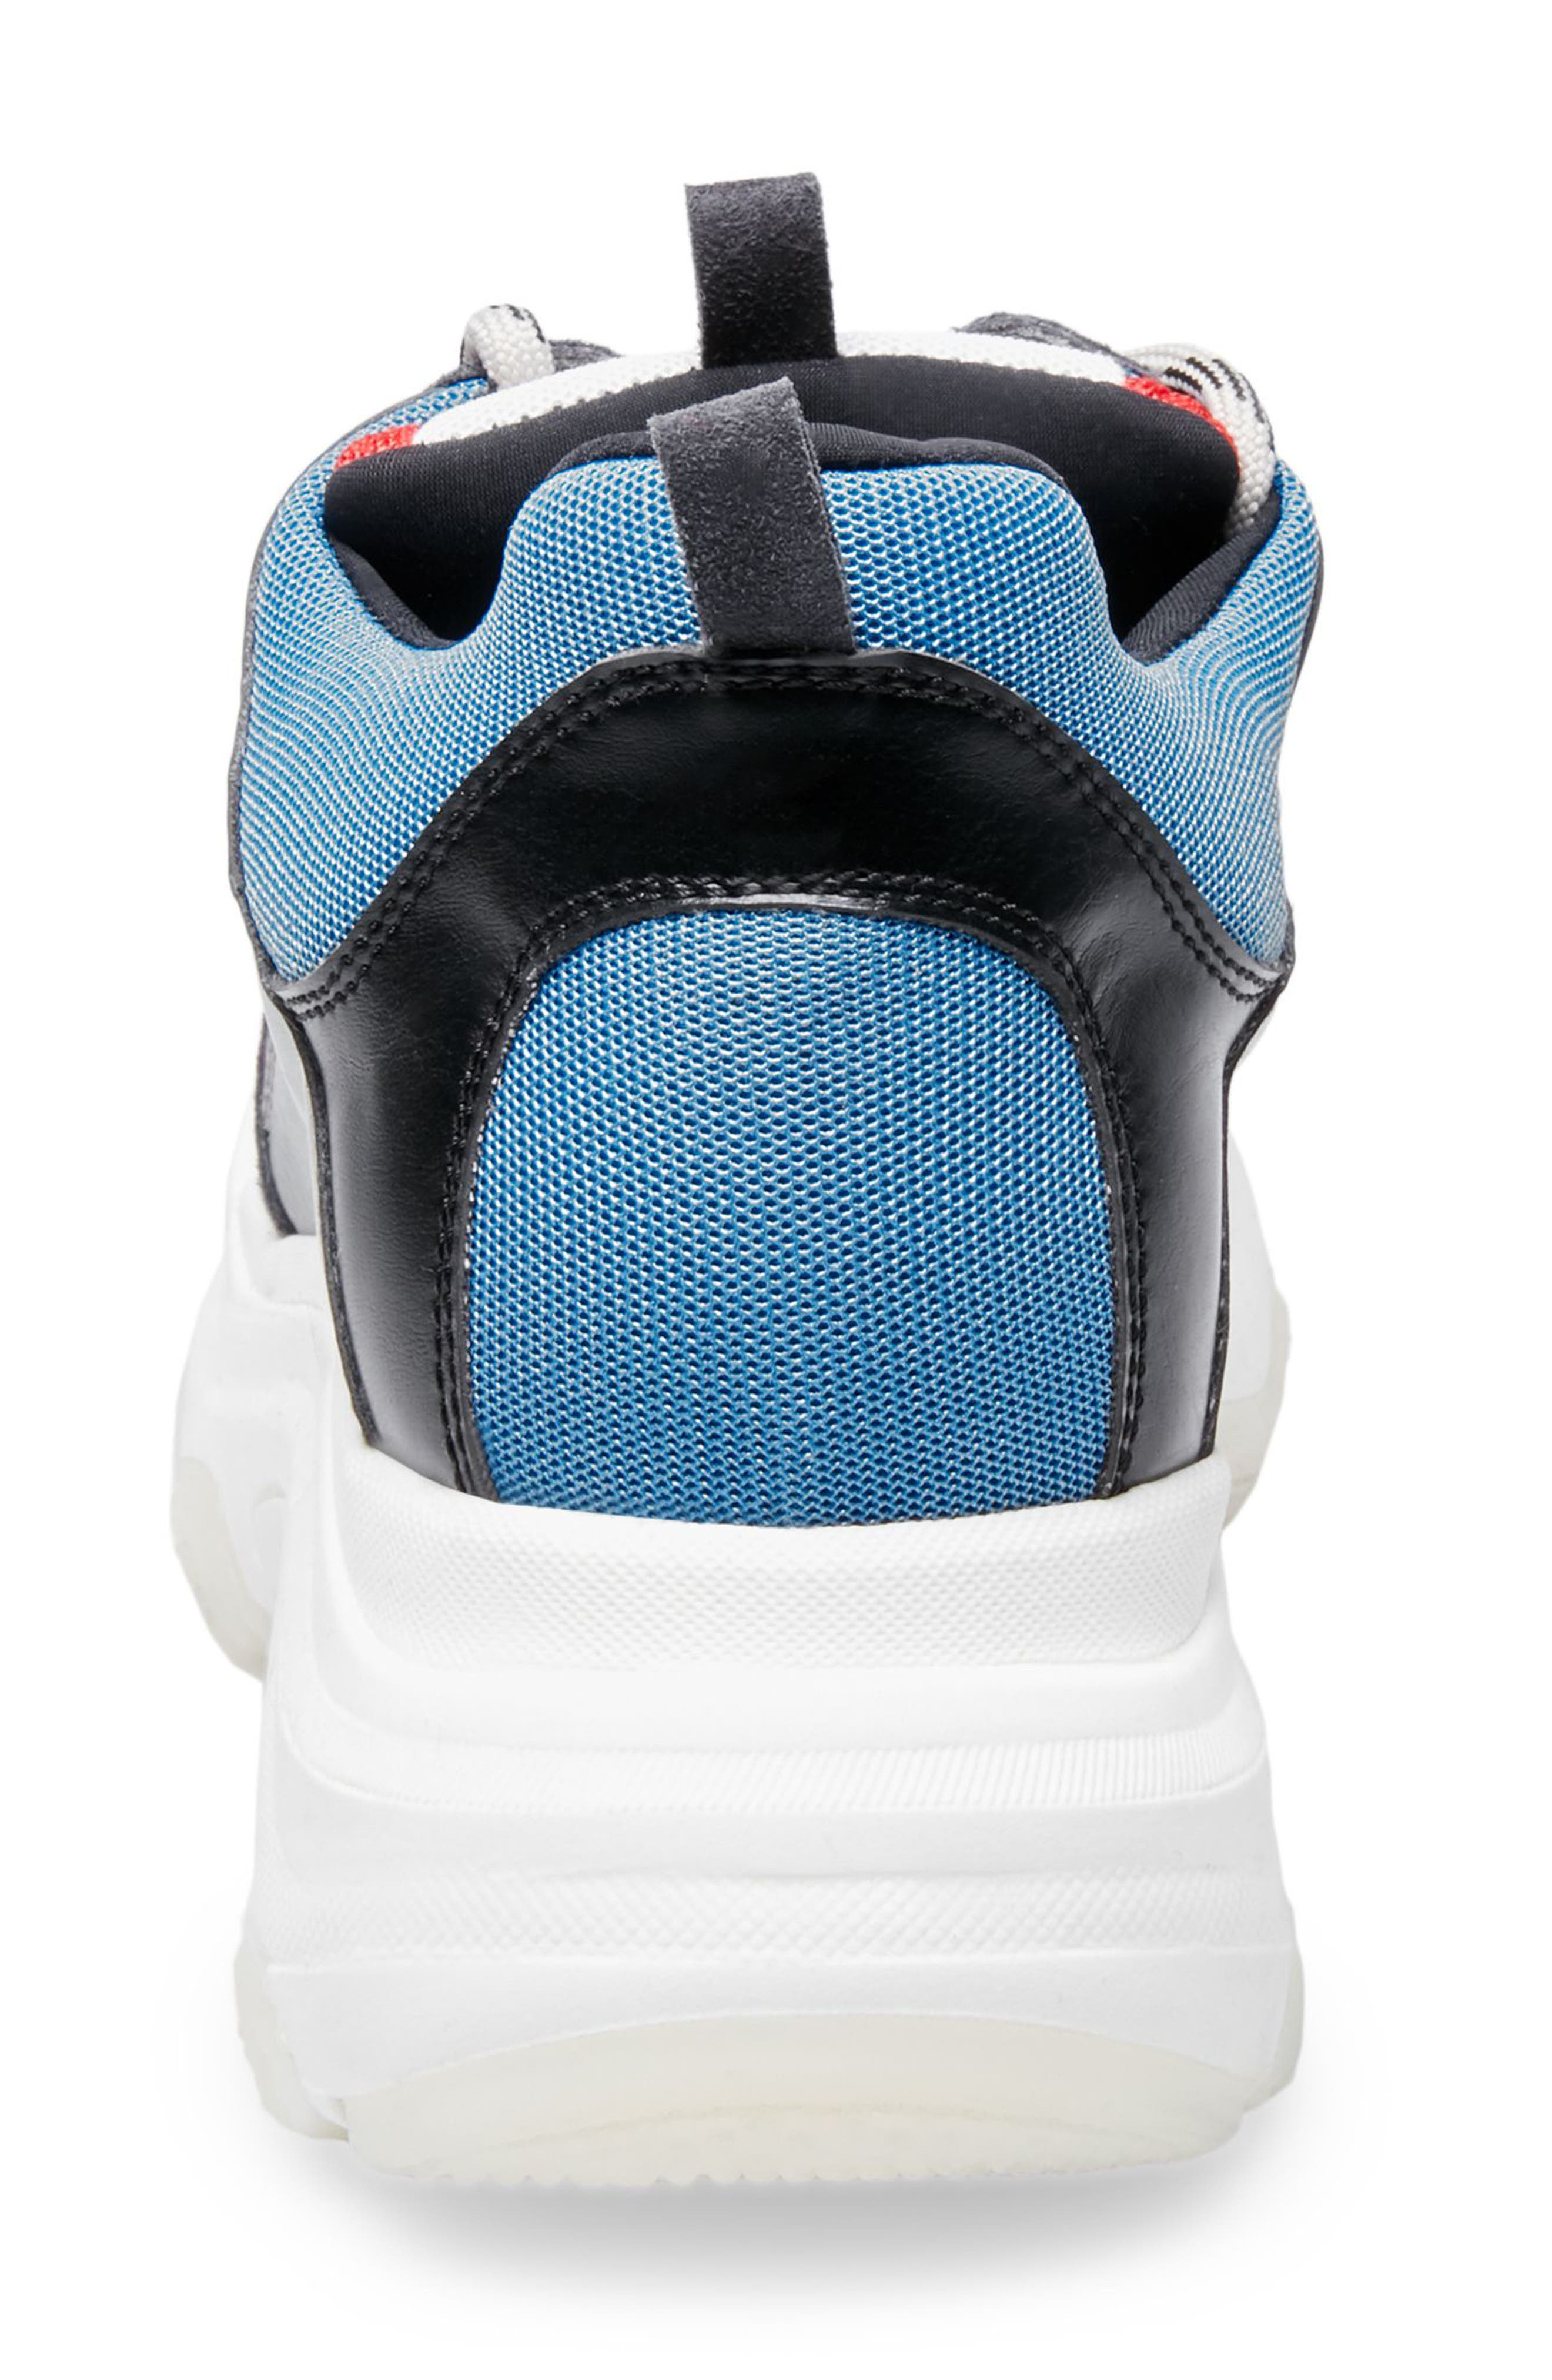 Russell Platform Sneaker,                             Alternate thumbnail 4, color,                             MULTI LEATHER